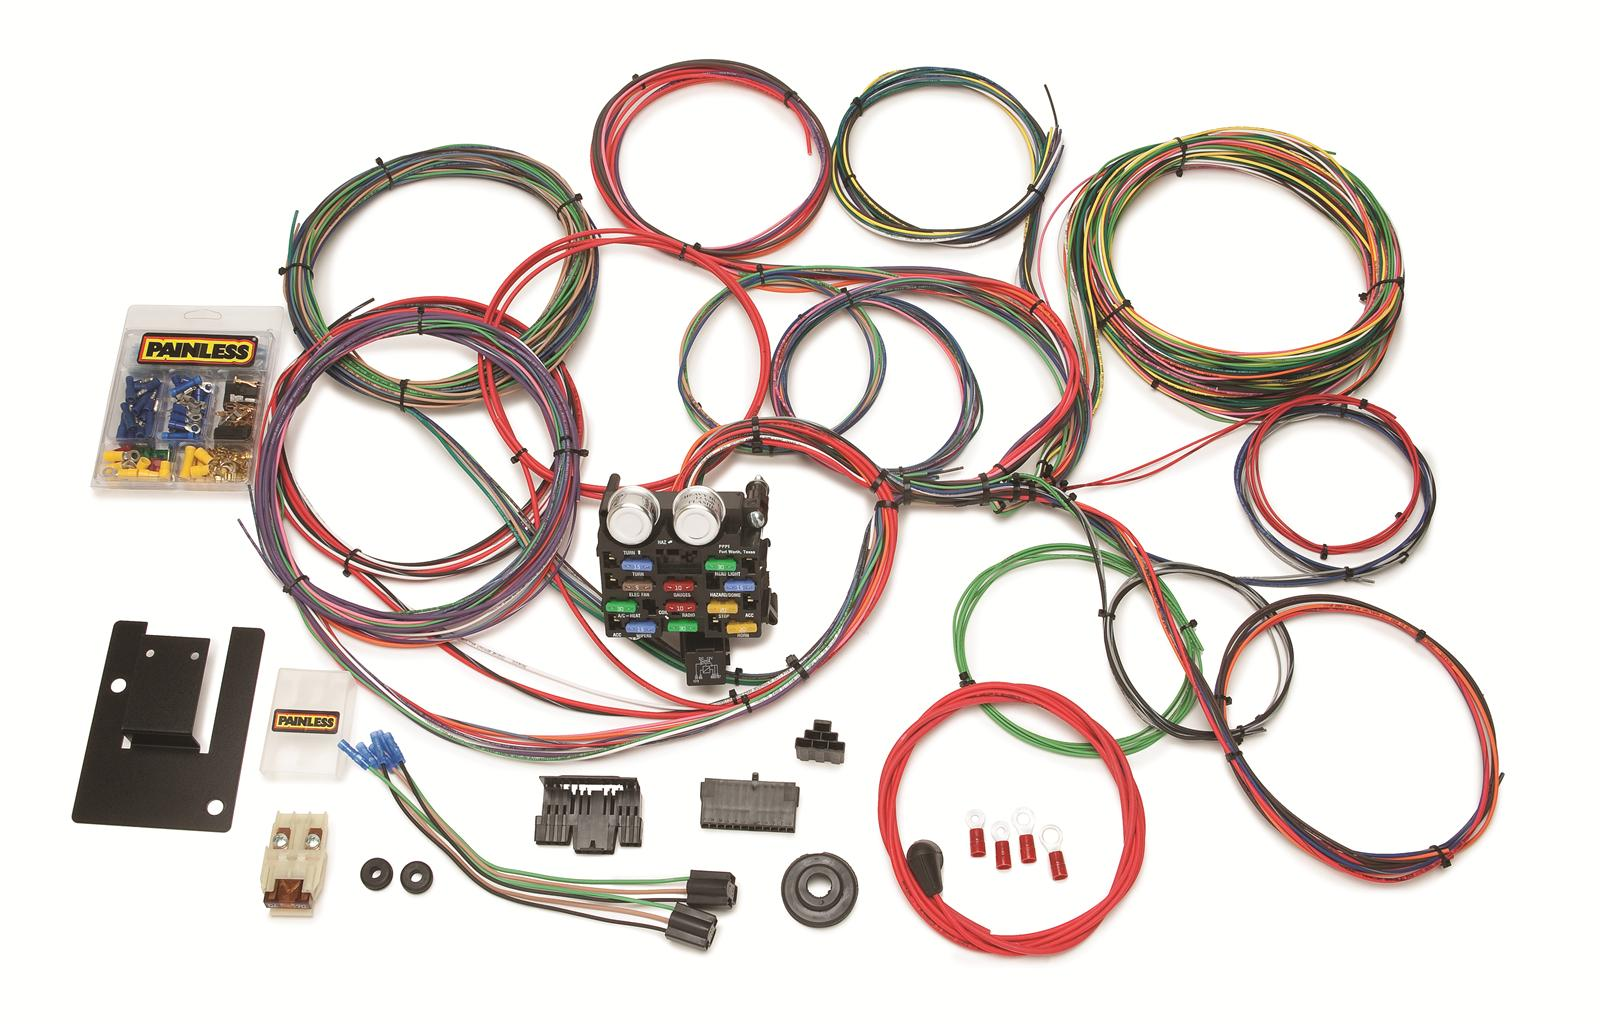 1955 Painless Wiring Harness 28 Diagram Images Universal Fuse Box Prf 20107 Xl Bel Air Performance 21 Circuit 57 Tri Five Chevy